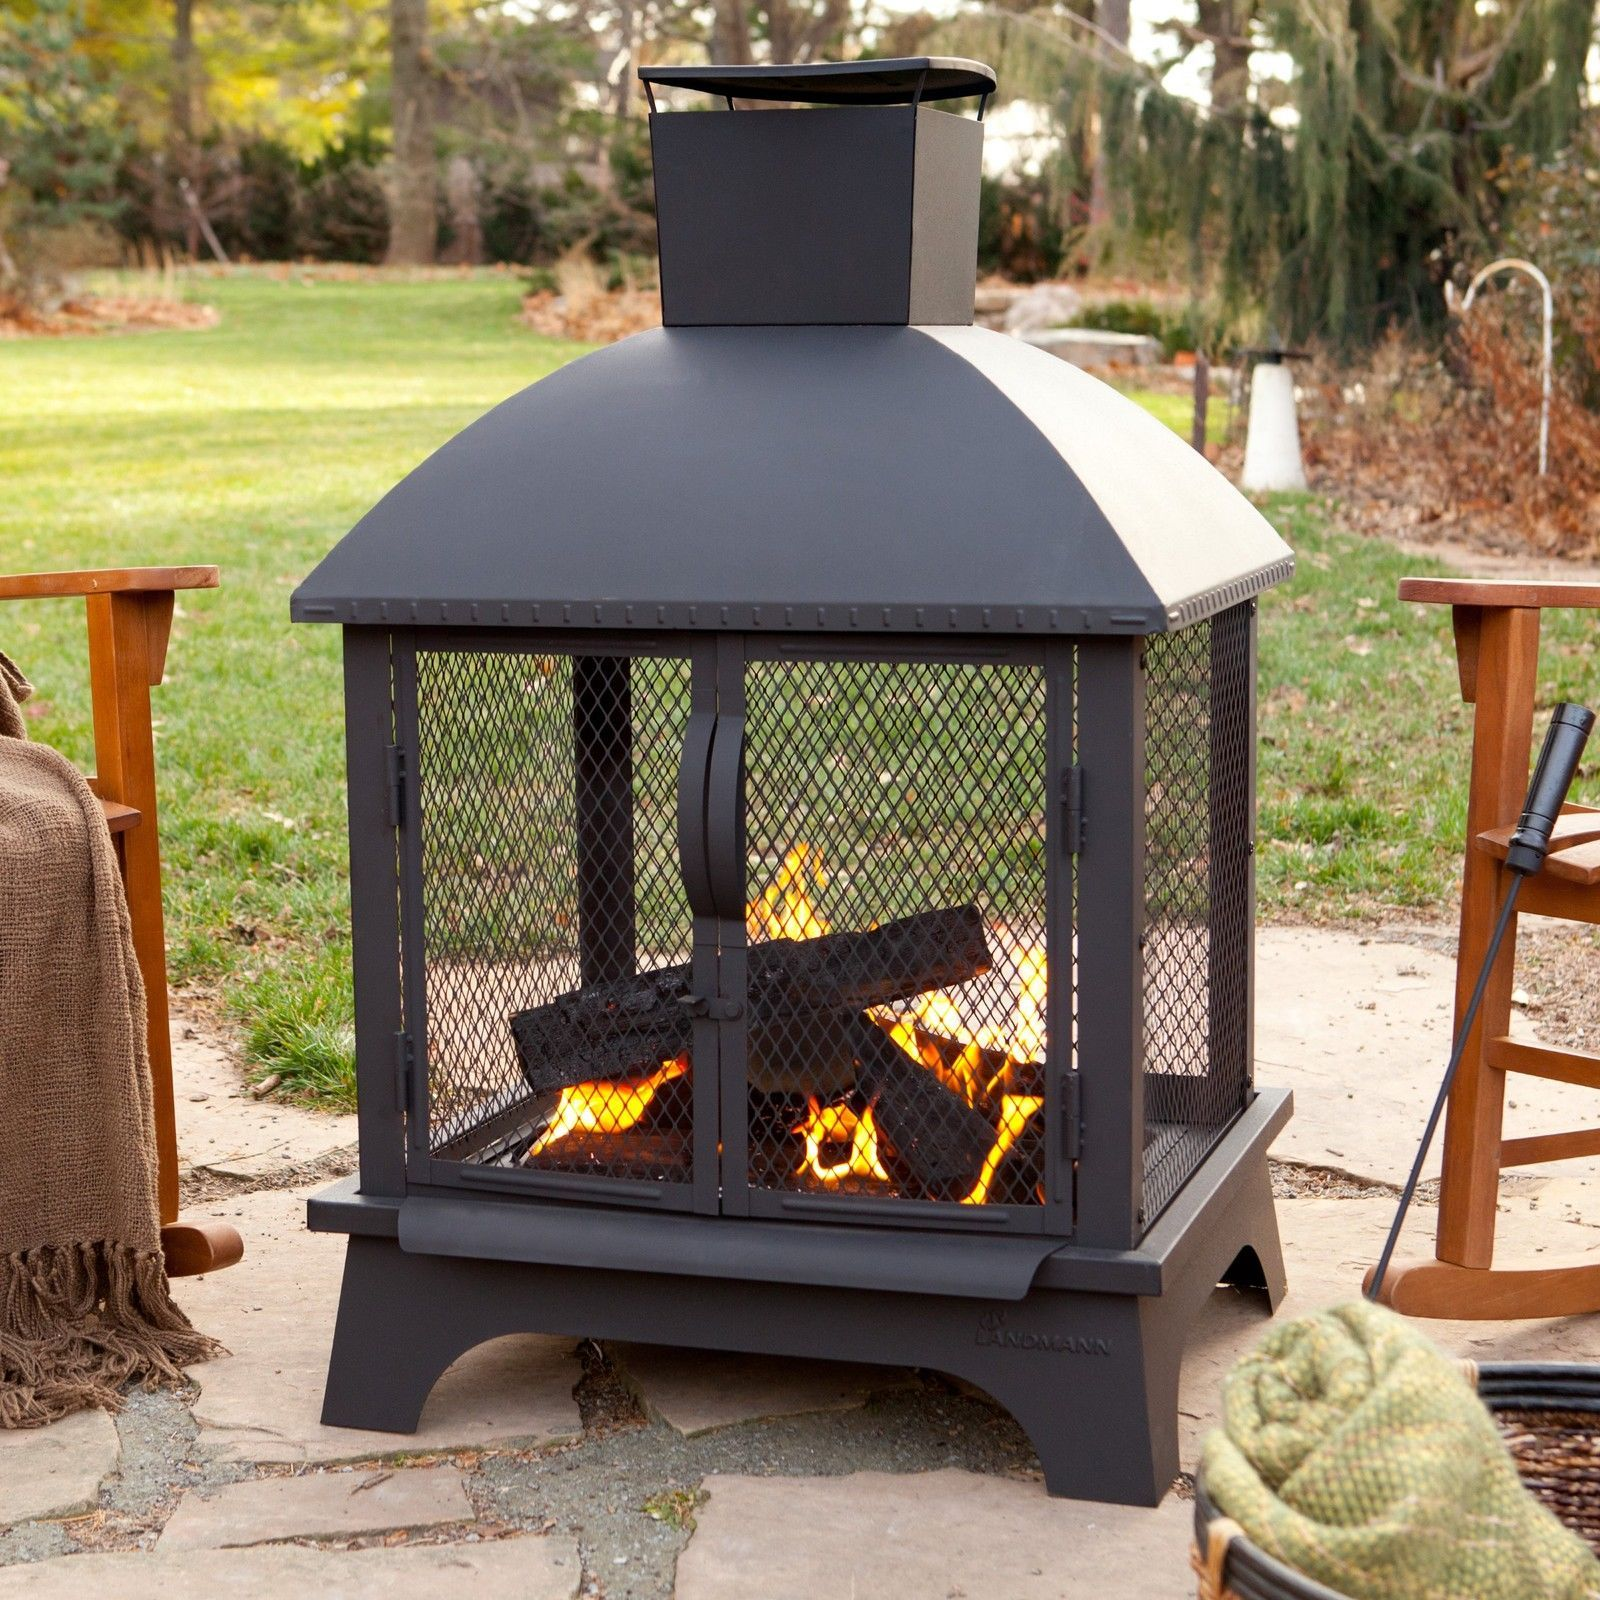 Benefits Wood Burning Chiminea Fire Pit